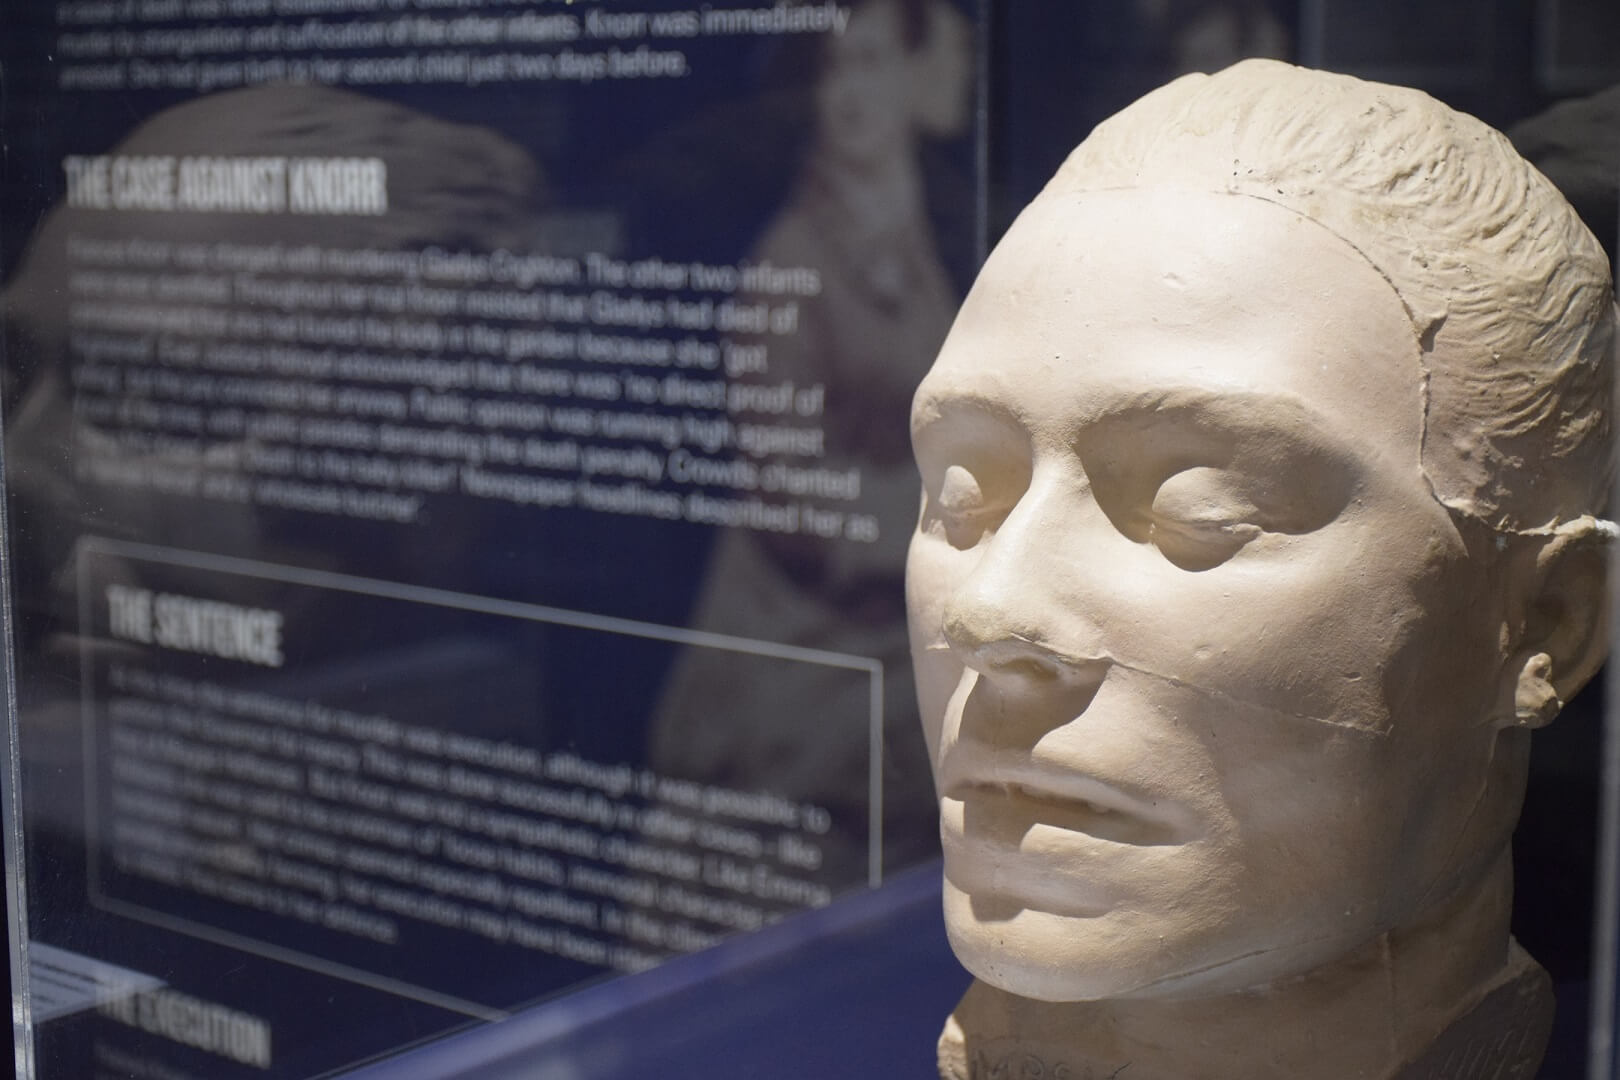 Frances Knorr death mask at Old Treasury sm